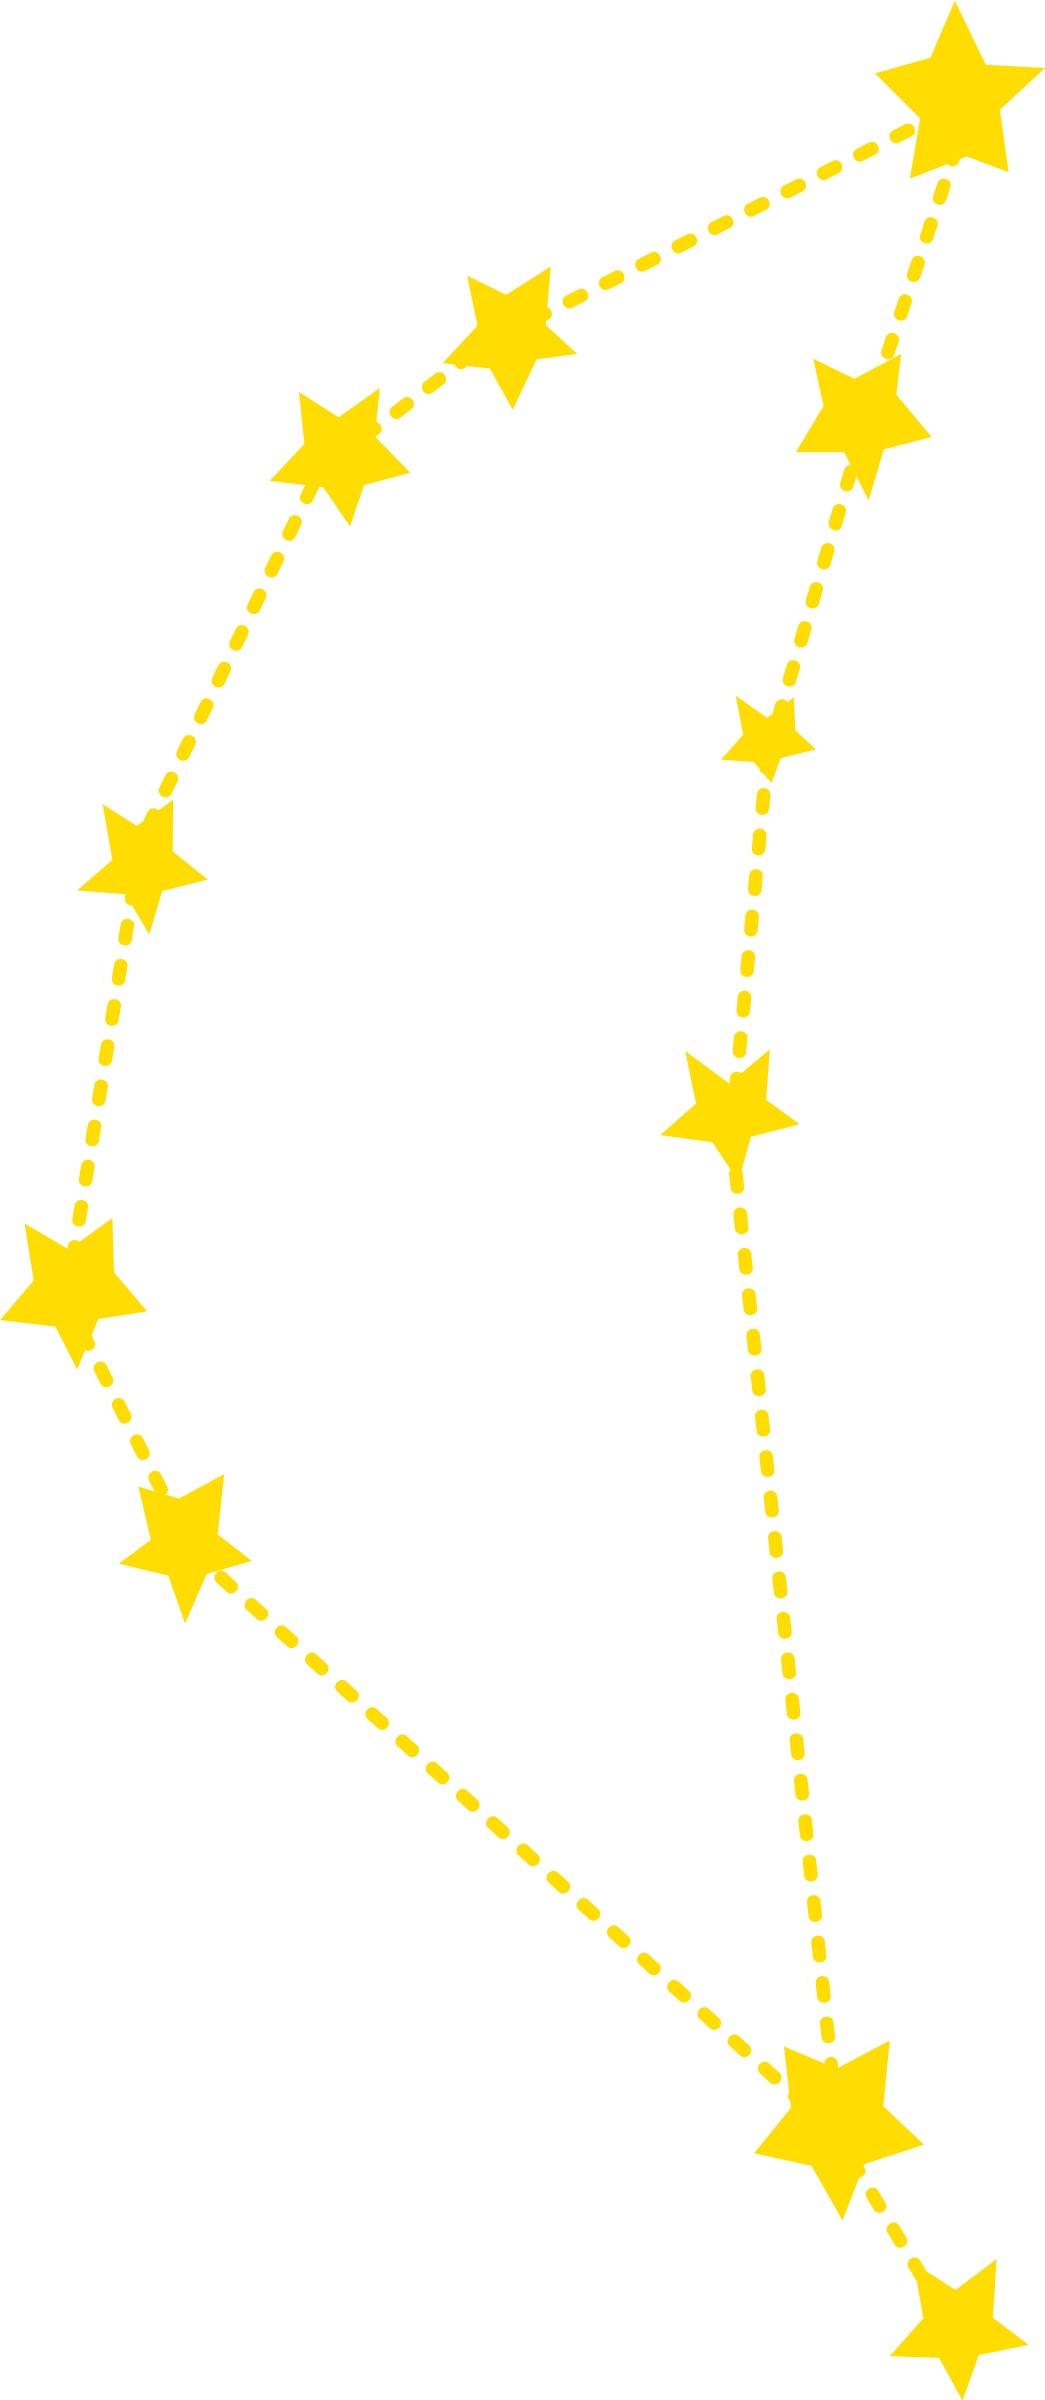 Star constellation clipart picture freeuse Clipart - Constellation of Capricorn picture freeuse